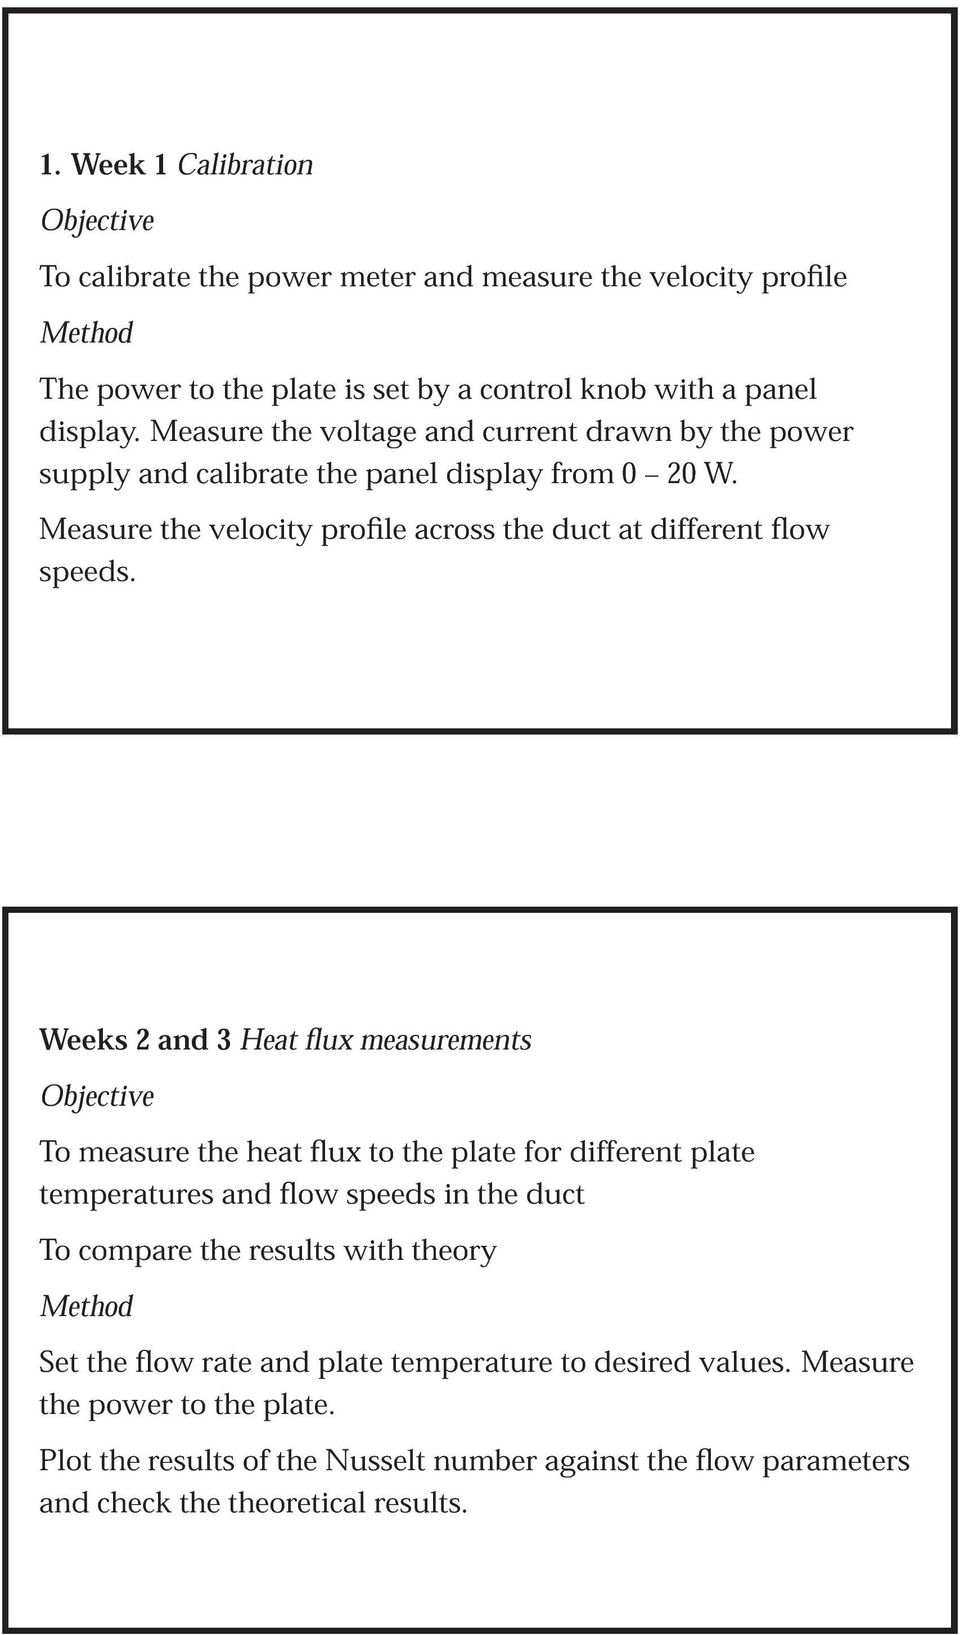 Weeks 2and 3 Heat flux measurements Objective Tomeasure the heatfluxtothe plate for different plate temperatures and flow speeds in the duct To compare the results with theory